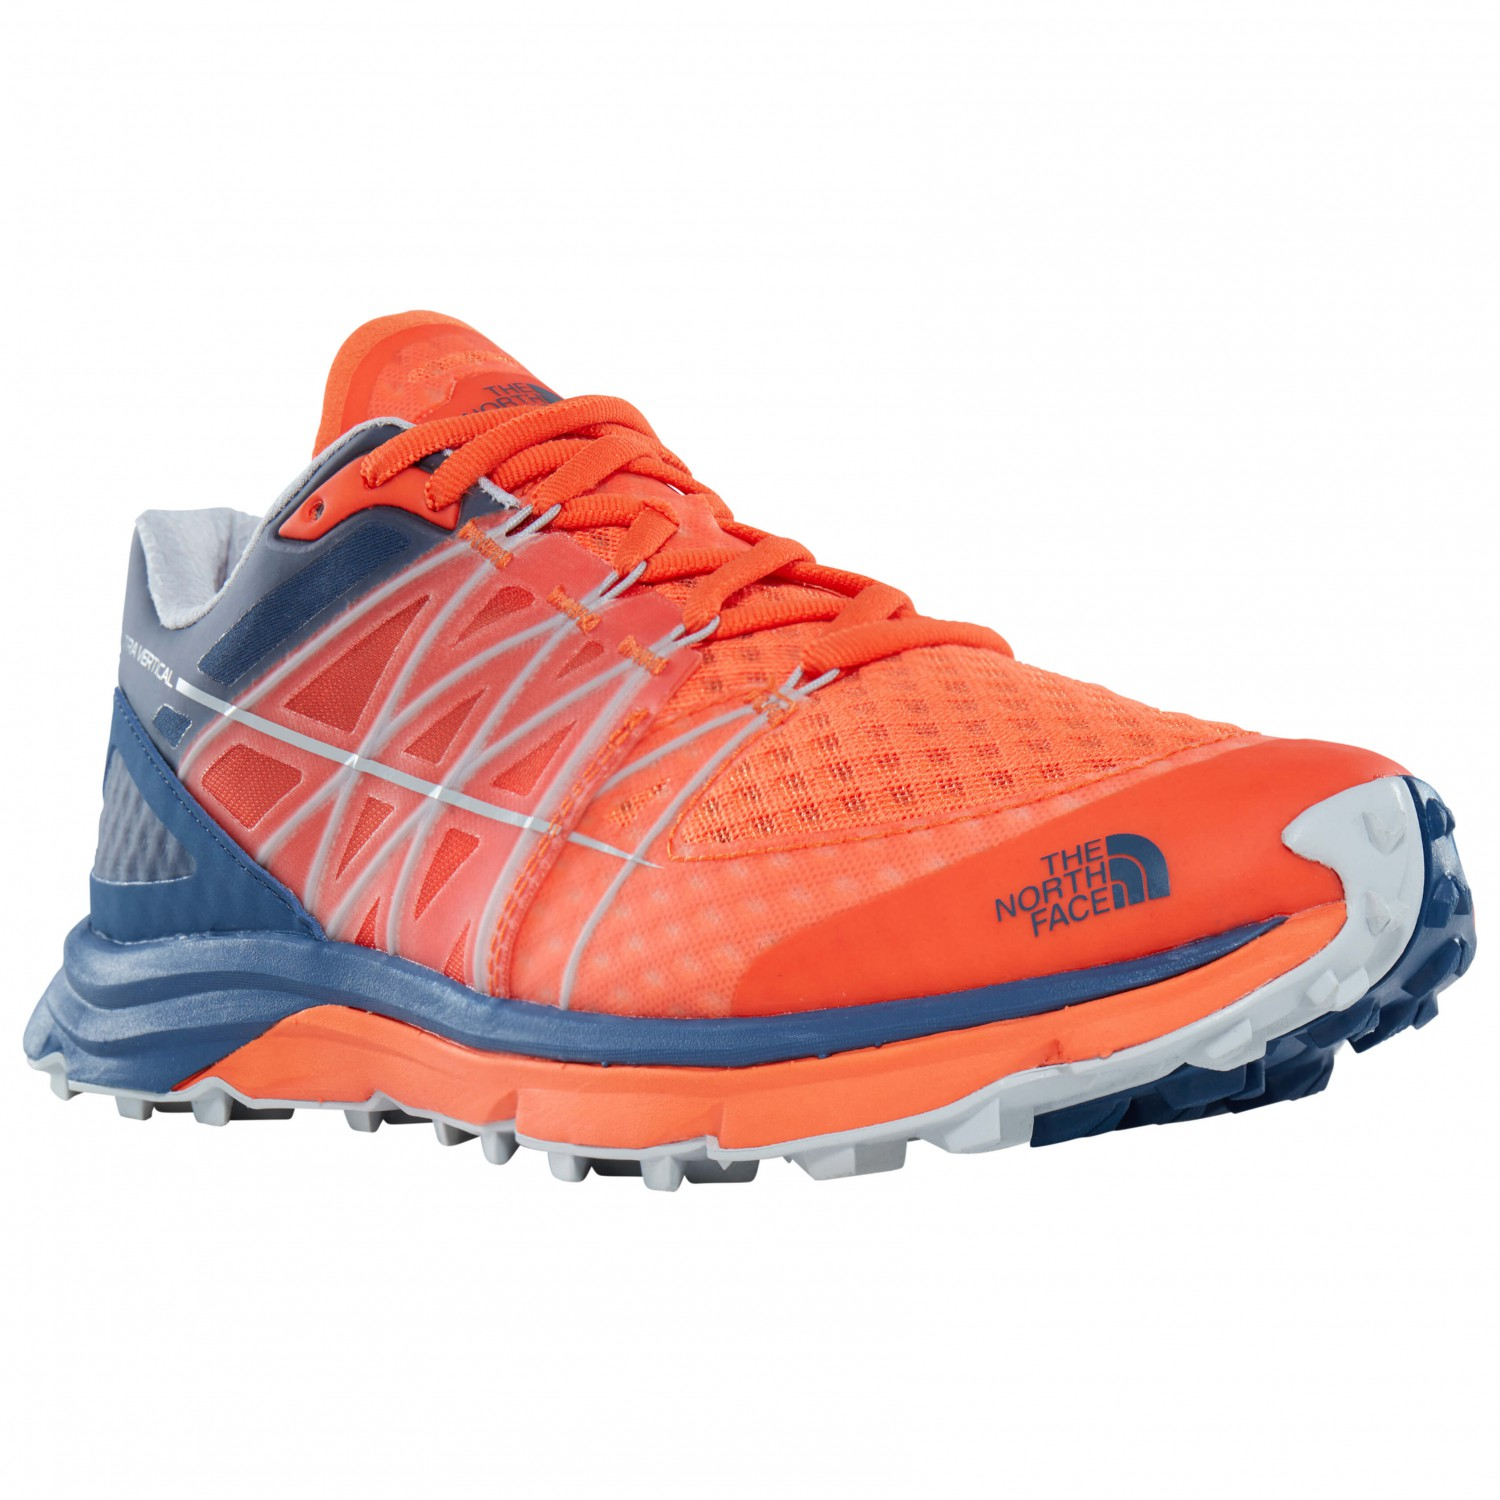 0f08ddac1 The North Face Ultra Vertical - Trail running shoes Men's | Buy ...